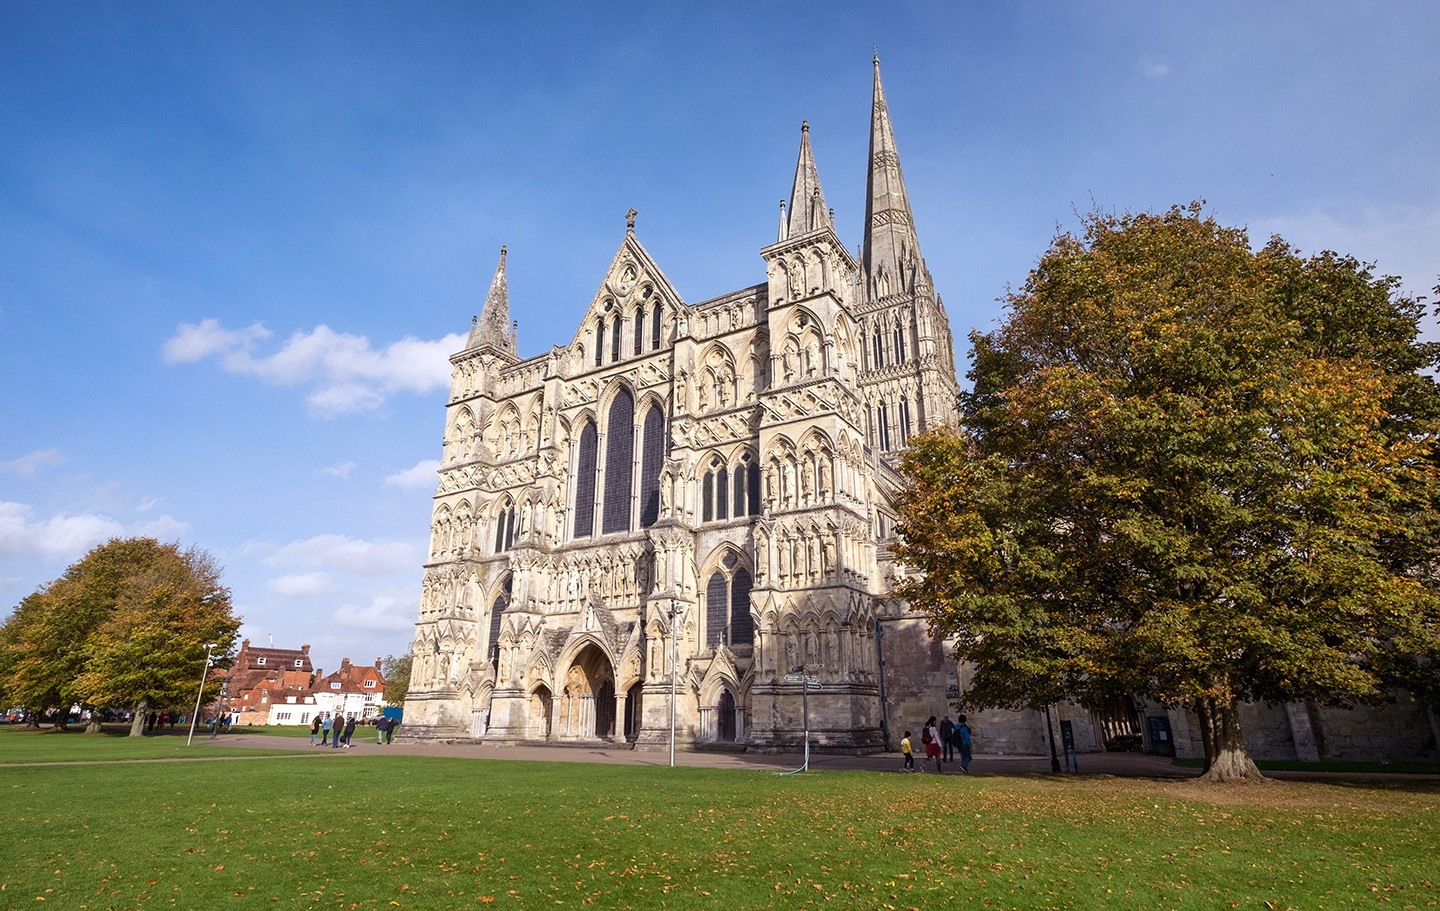 Salisbury cathedral on a trip to the historic sites of England by train